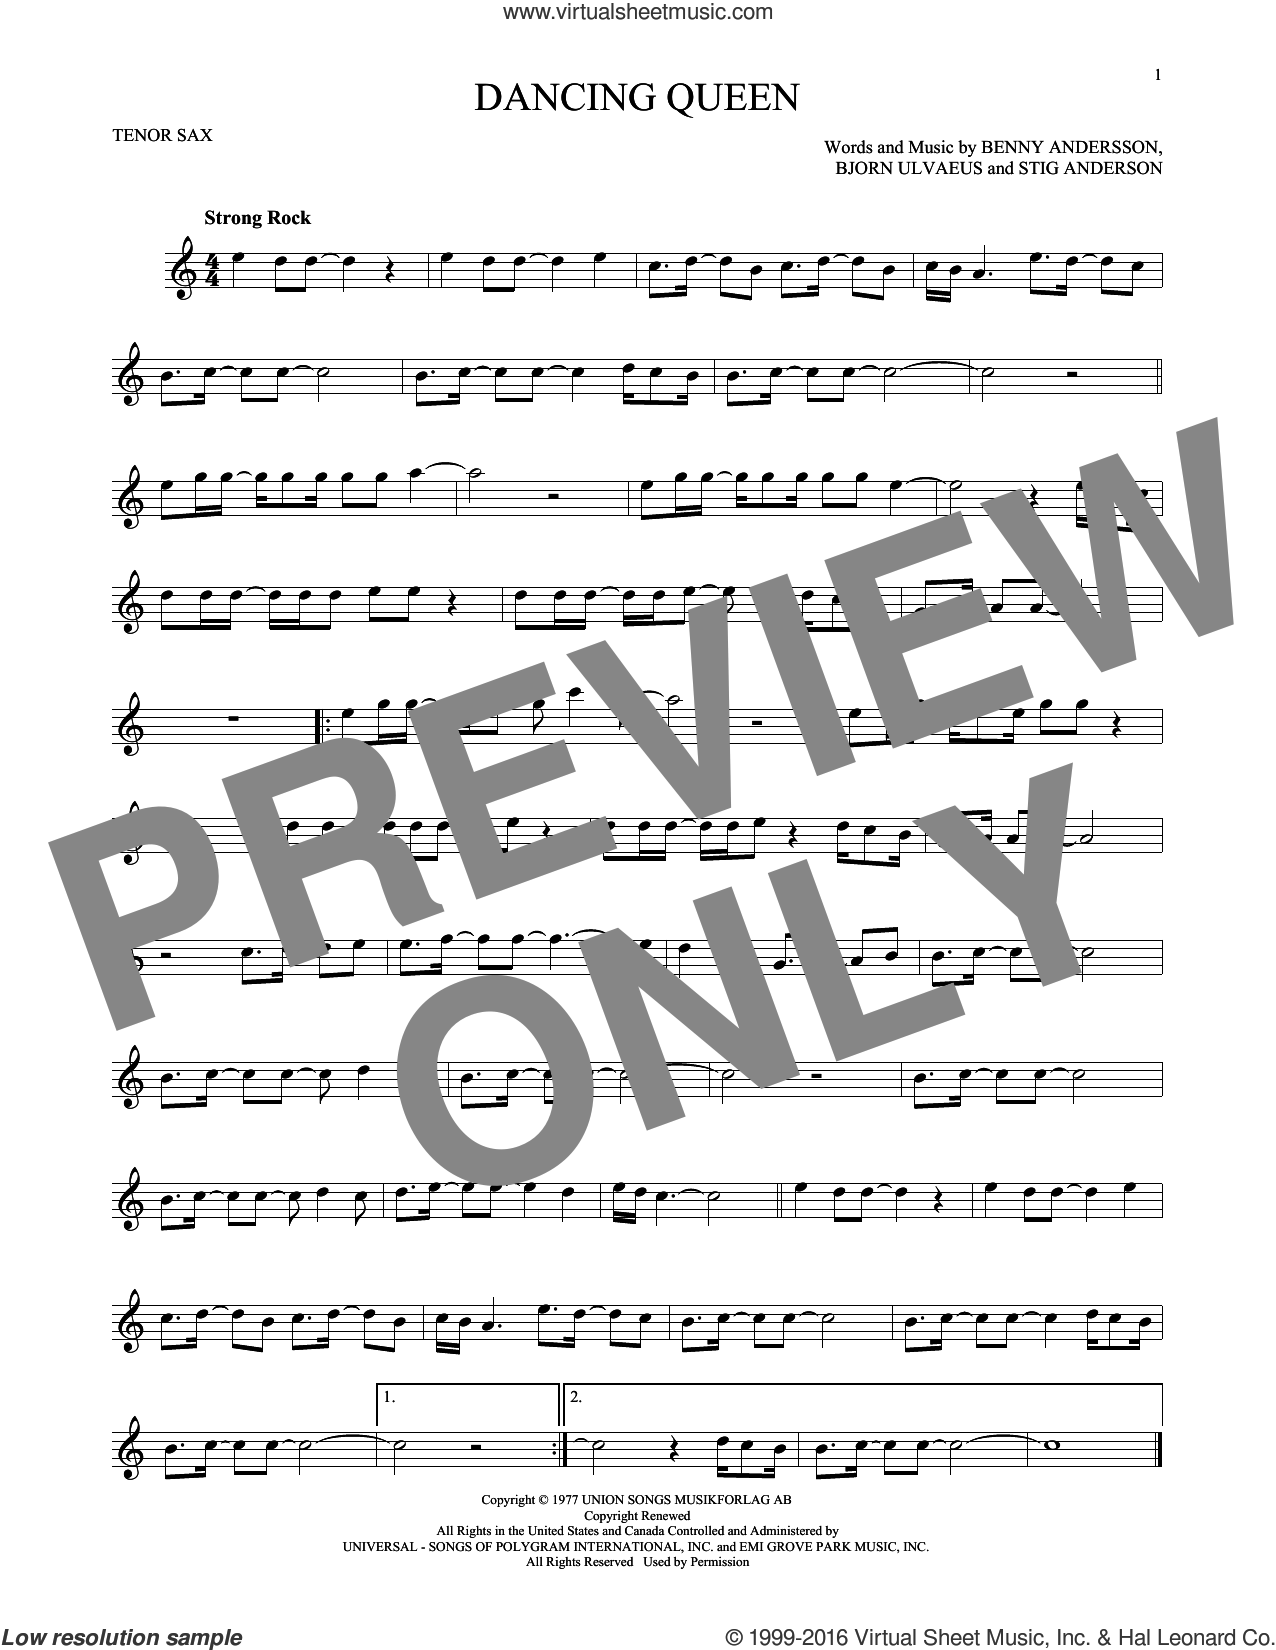 Dancing Queen sheet music for tenor saxophone solo by Stig Anderson, ABBA, Benny Andersson and Bjorn Ulvaeus. Score Image Preview.